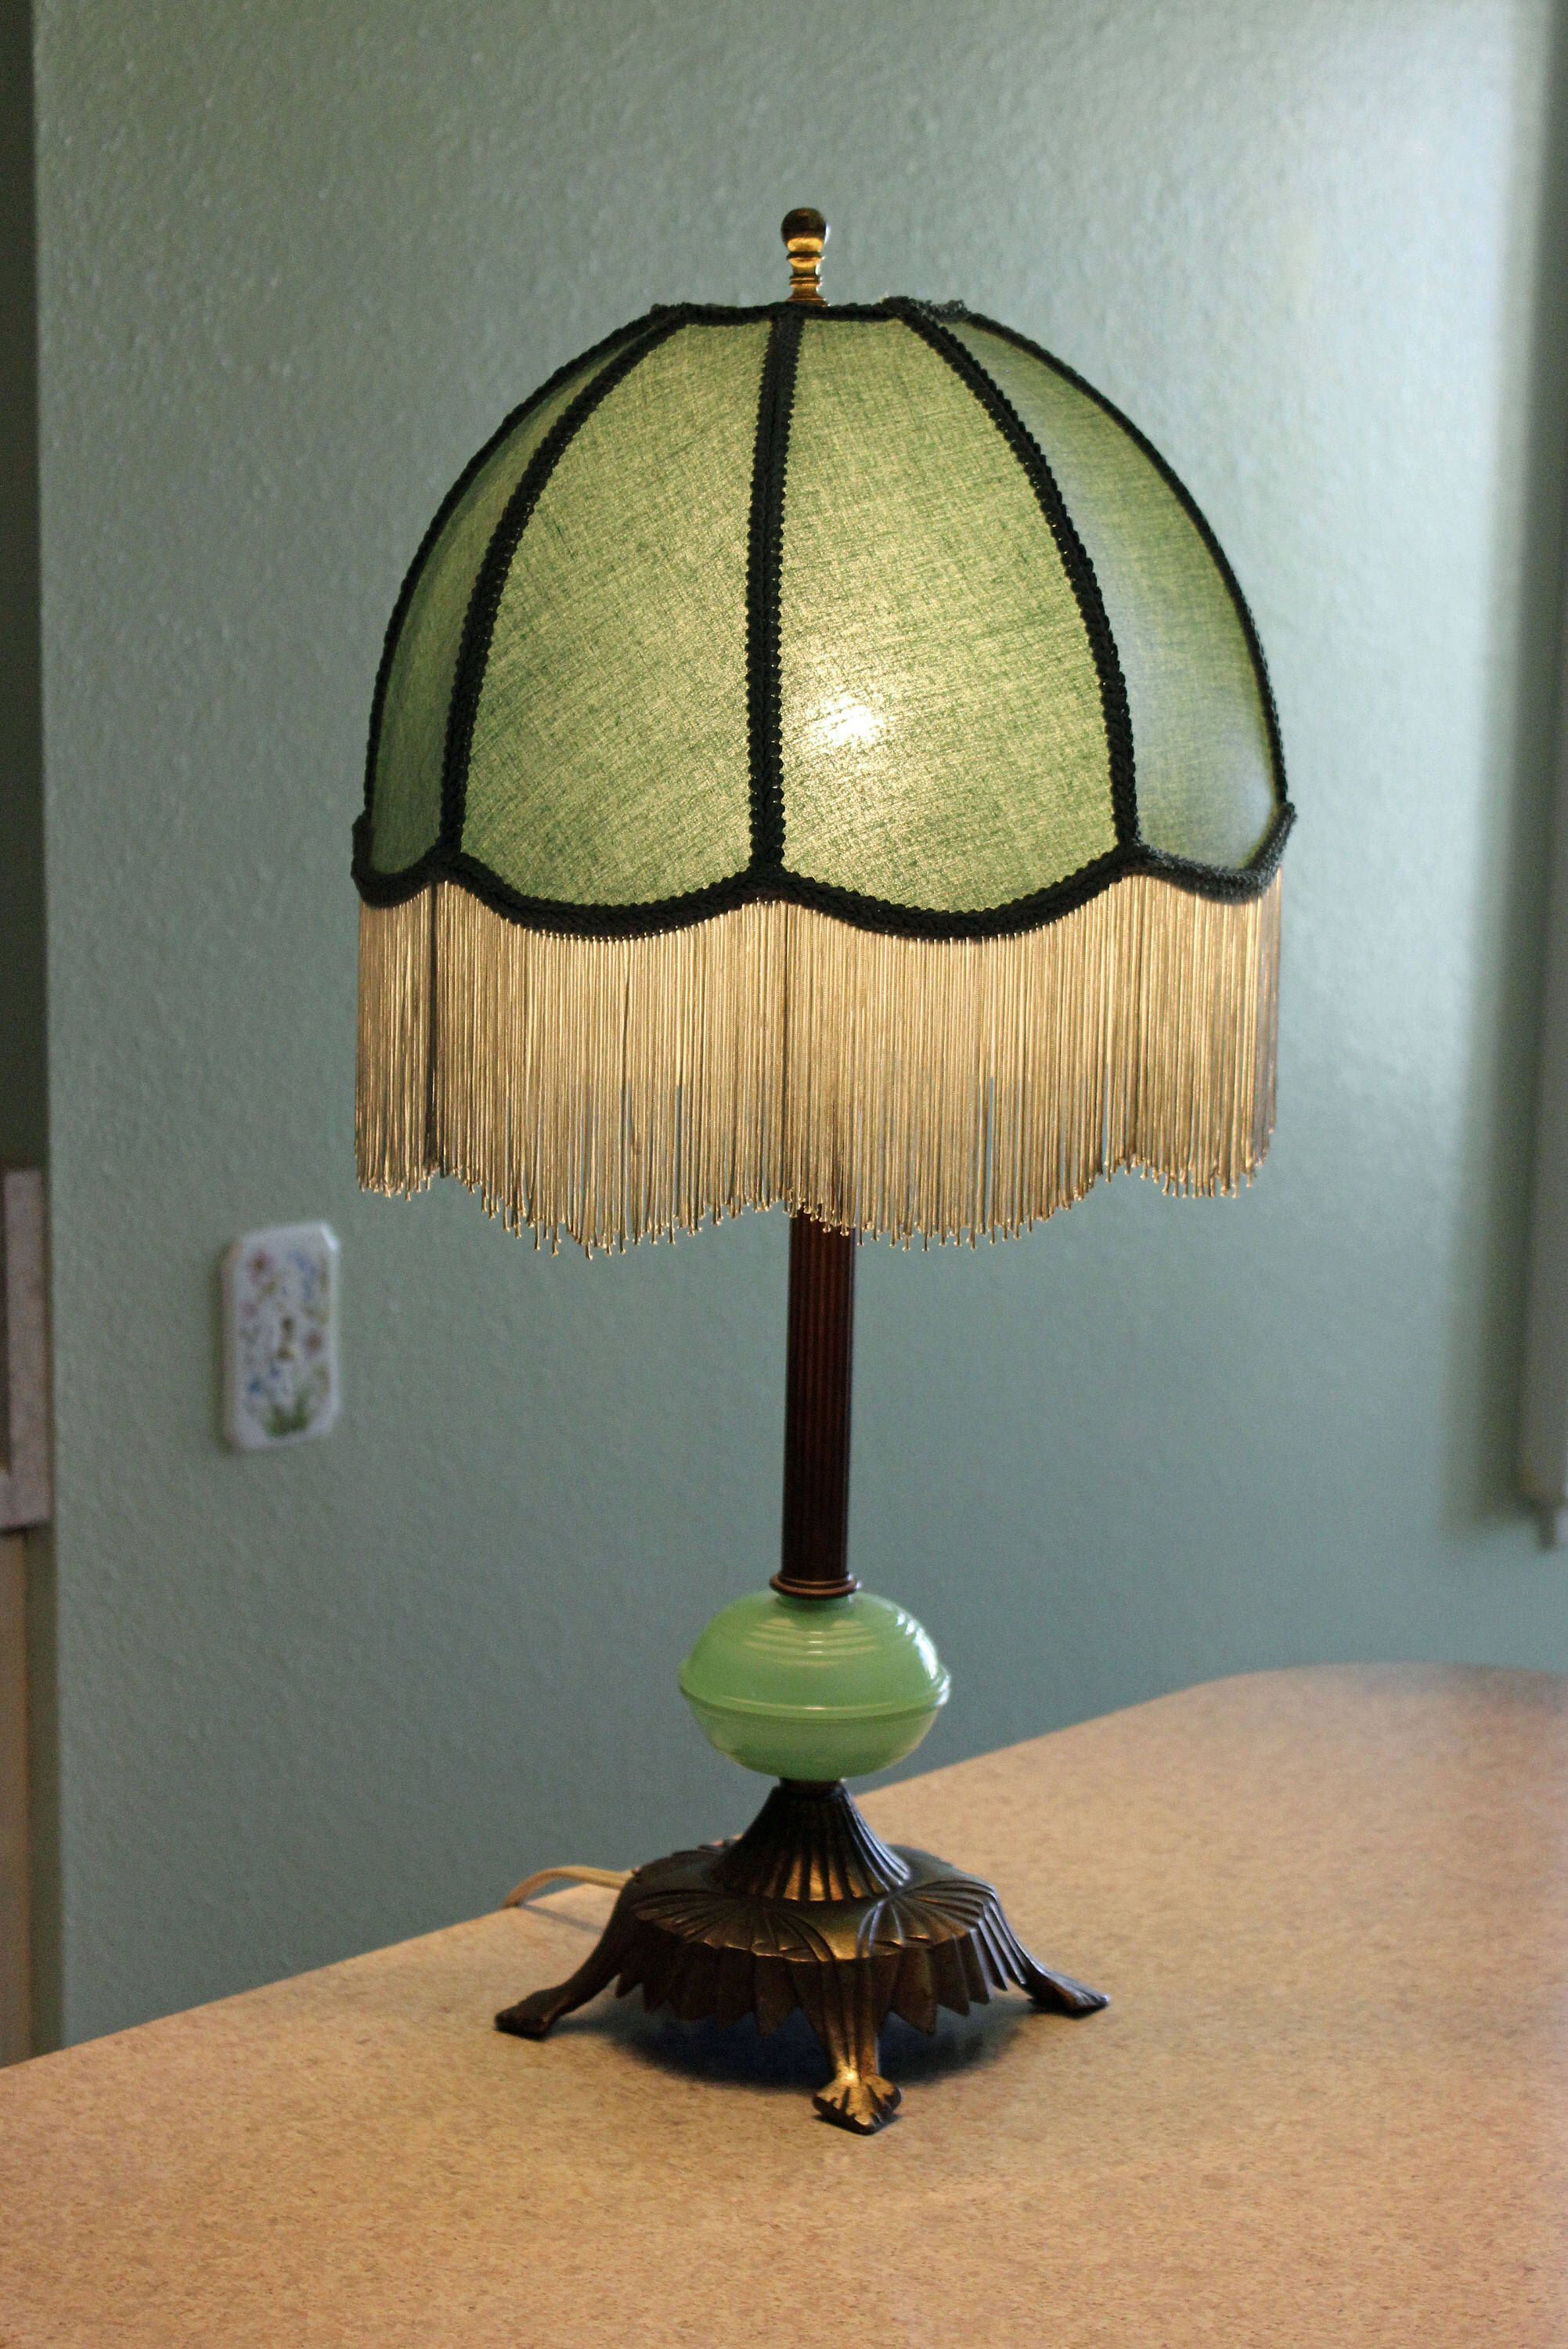 Jadeite Table Lamp Jadeite Boudoir Lamp Dome Fringed Shade 1940s Bedroom Lamp Shabby Chic 27 Inches Tall Excellent Working Glass Table Lamp Lamp Metal Columns